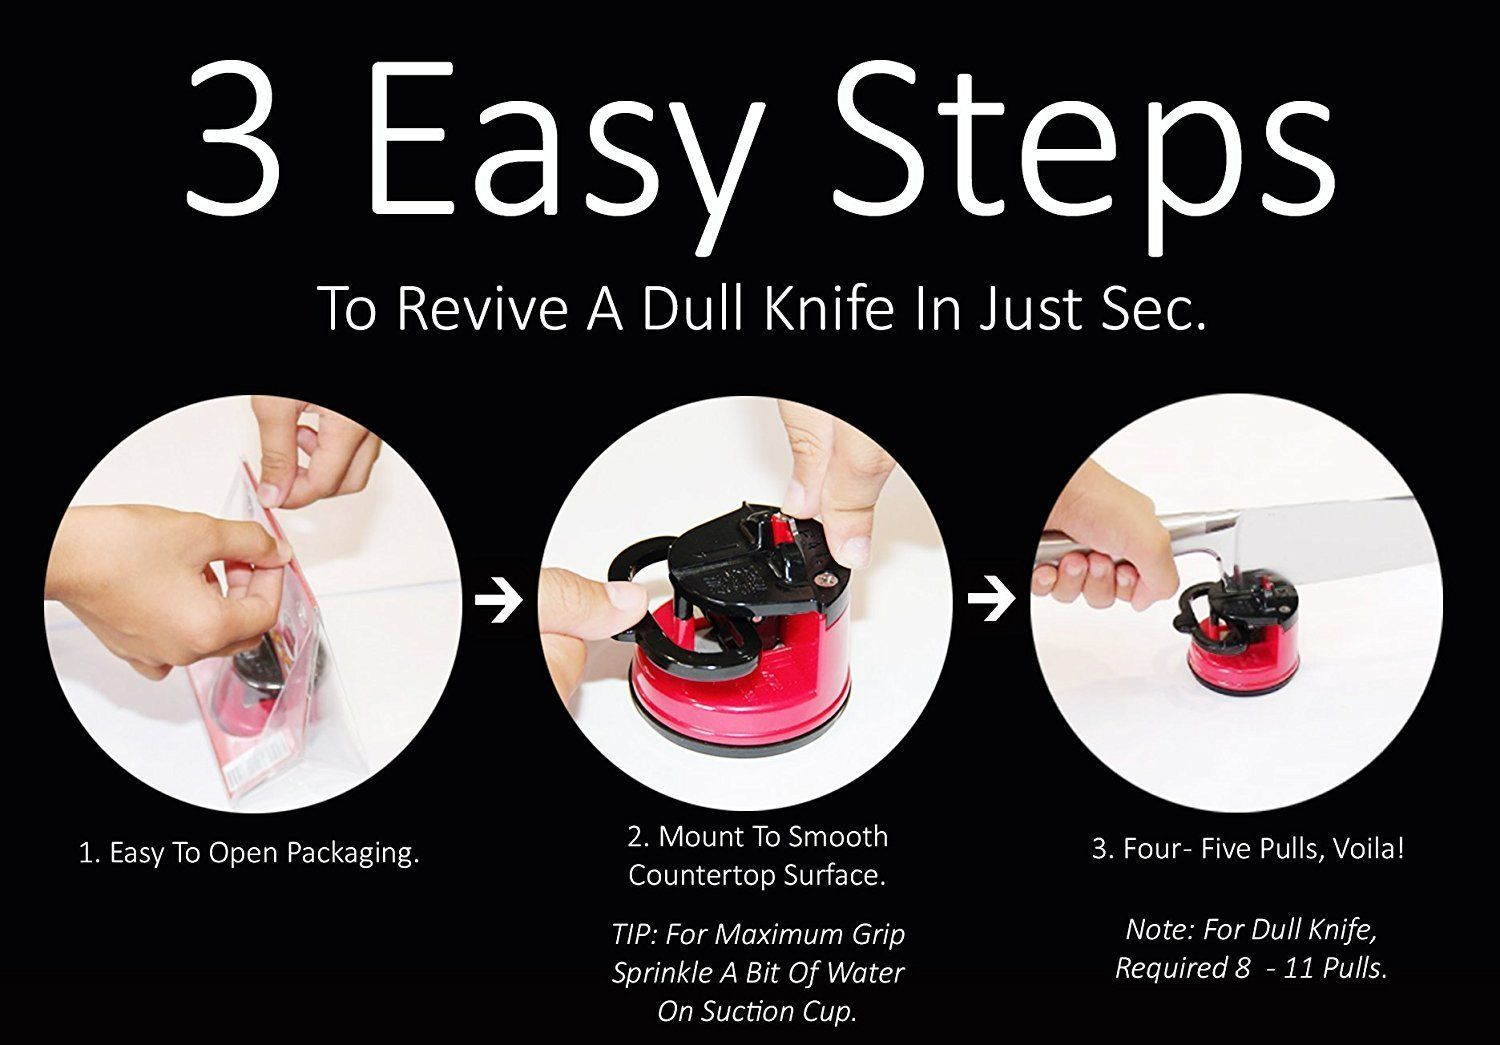 Com Sunrisepro Supreme Knife Sharpener For All Blade Types Razor Sharp Precision